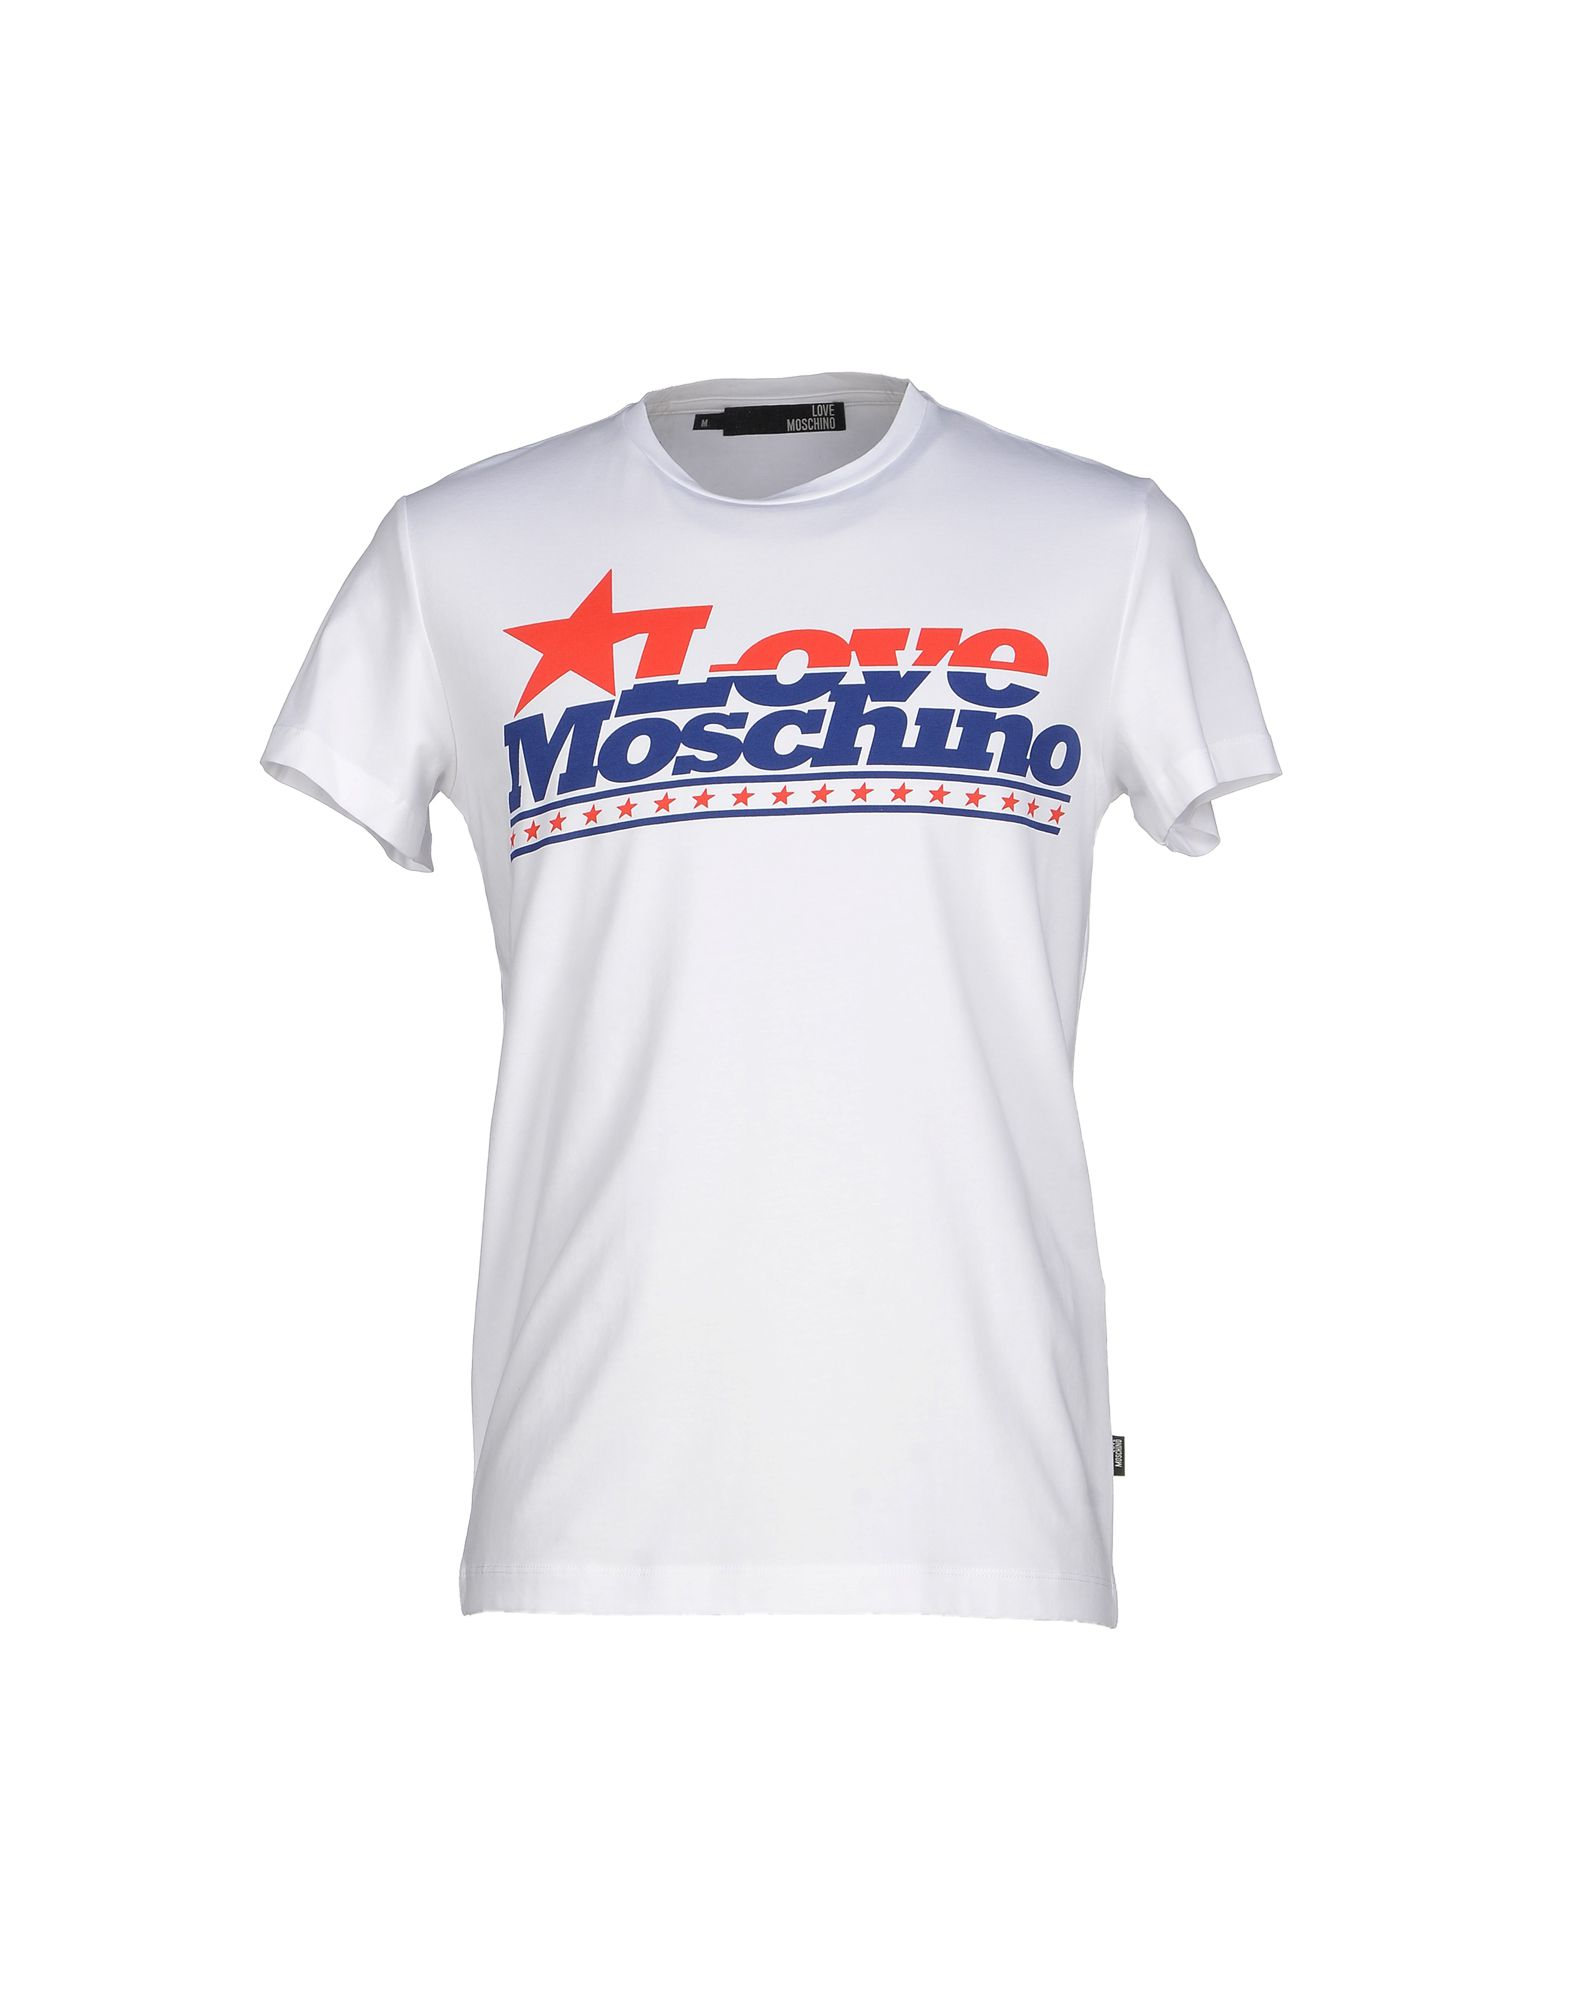 lyst love moschino t shirt in white for men. Black Bedroom Furniture Sets. Home Design Ideas